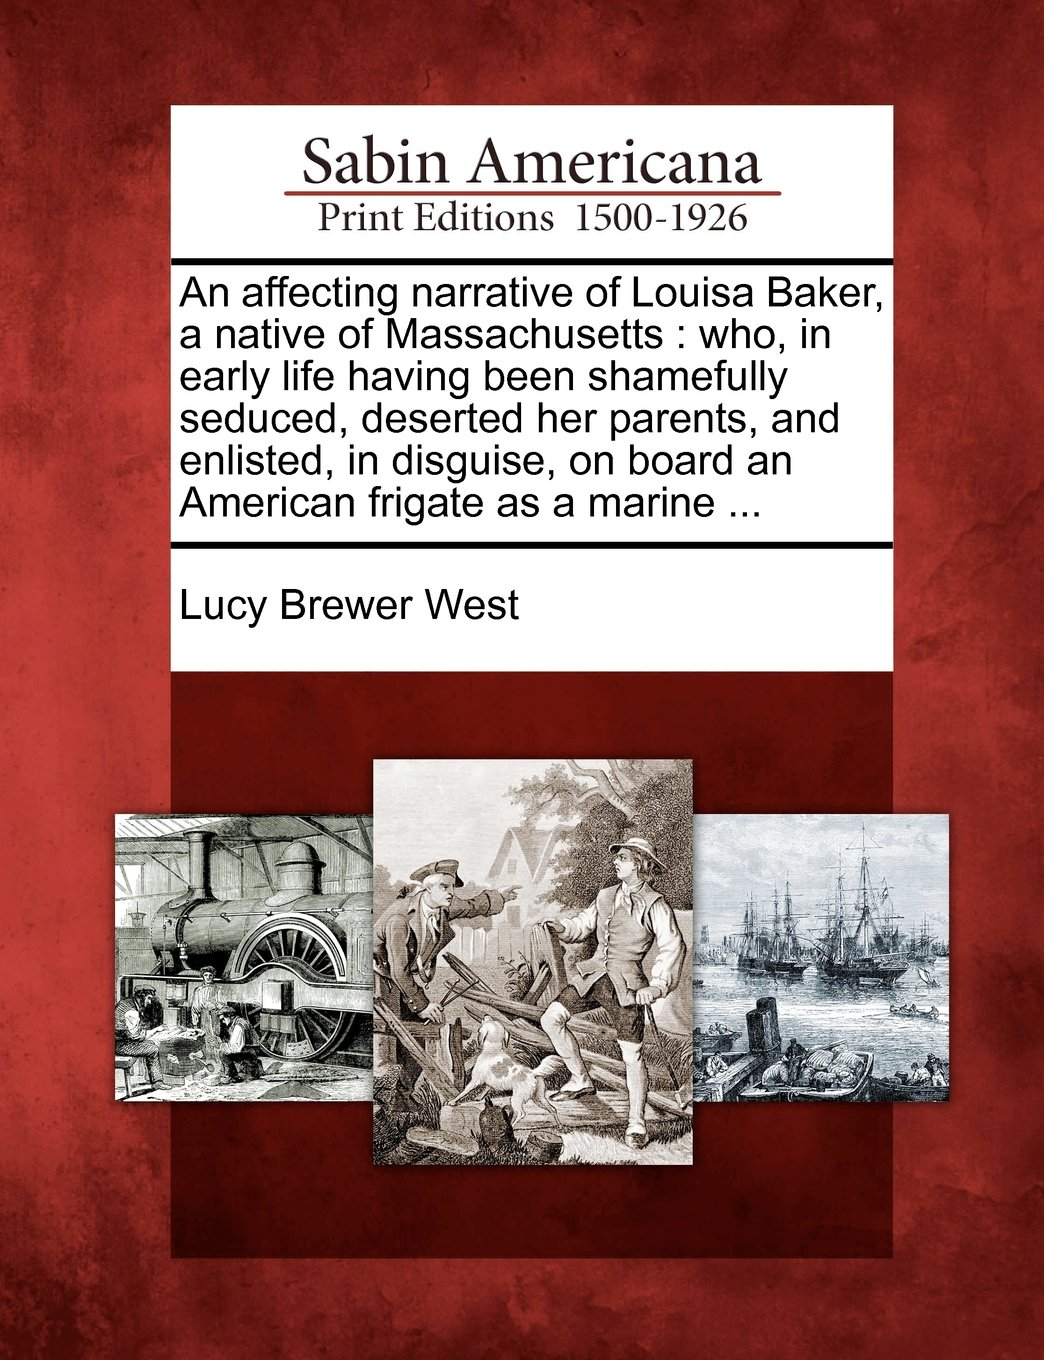 Read Online An affecting narrative of Louisa Baker, a native of Massachusetts: who, in early life having been shamefully seduced, deserted her parents, and ... on board an American frigate as a marine ... pdf